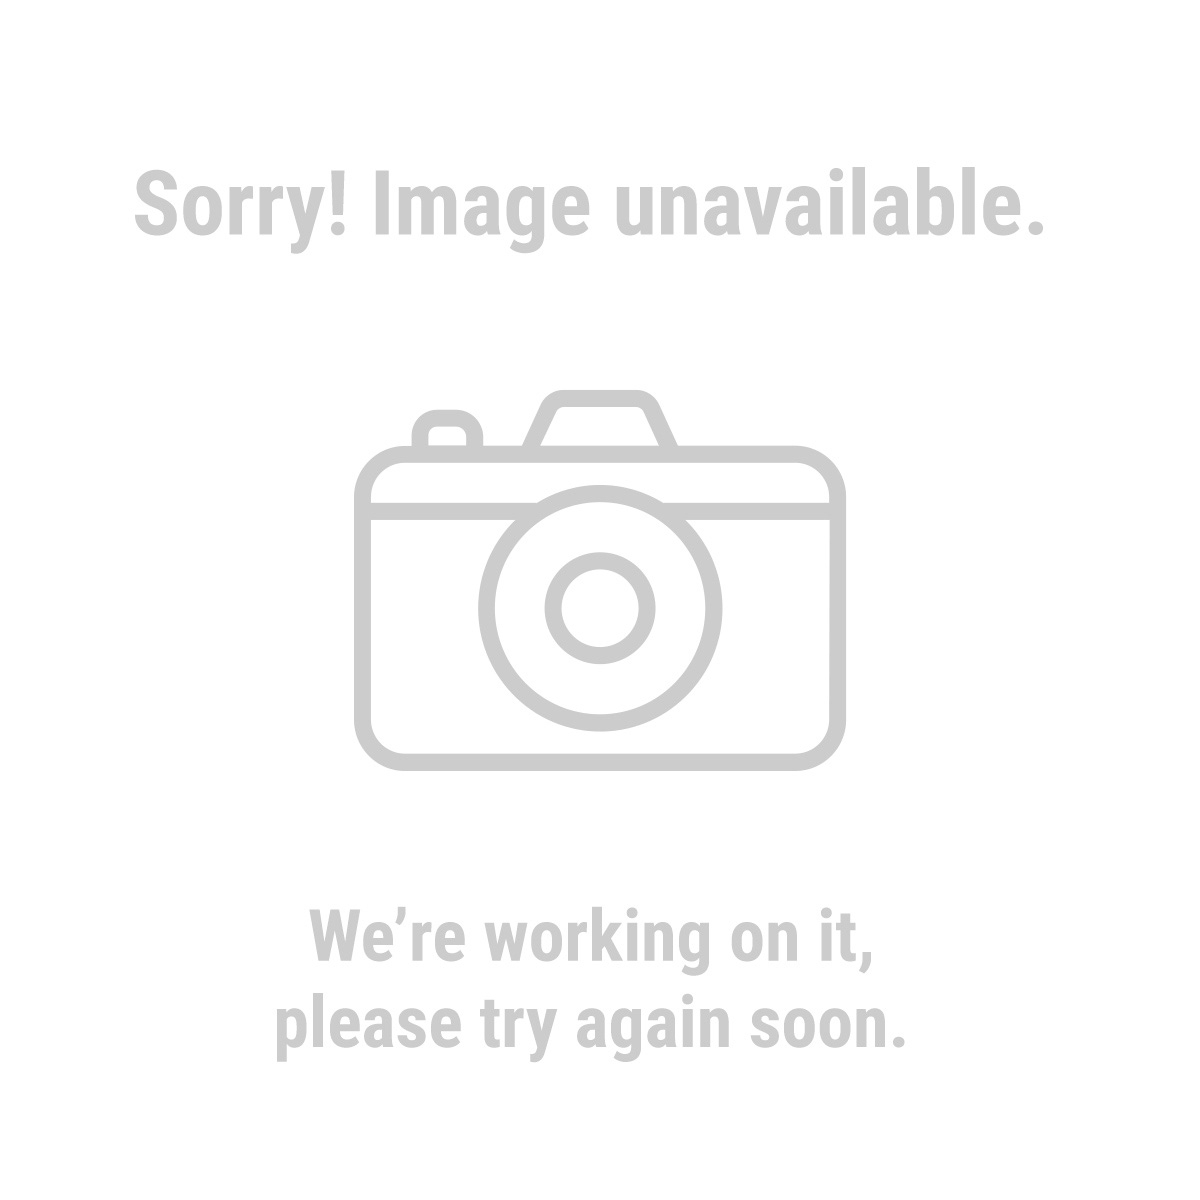 Dc Clamp Harbor Freight : Function clamp on digital multimeter